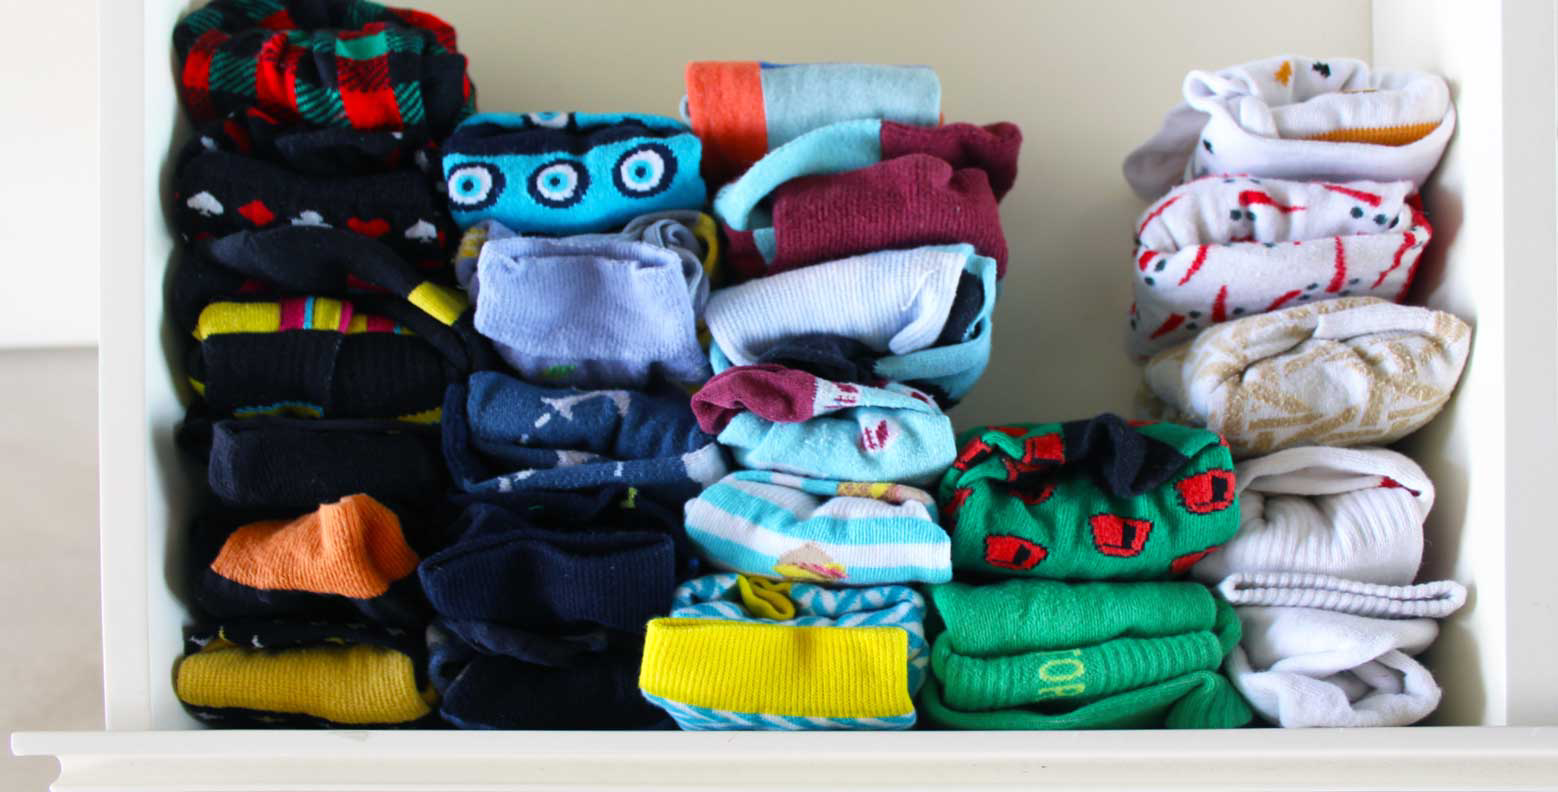 Organize sock drawer by color